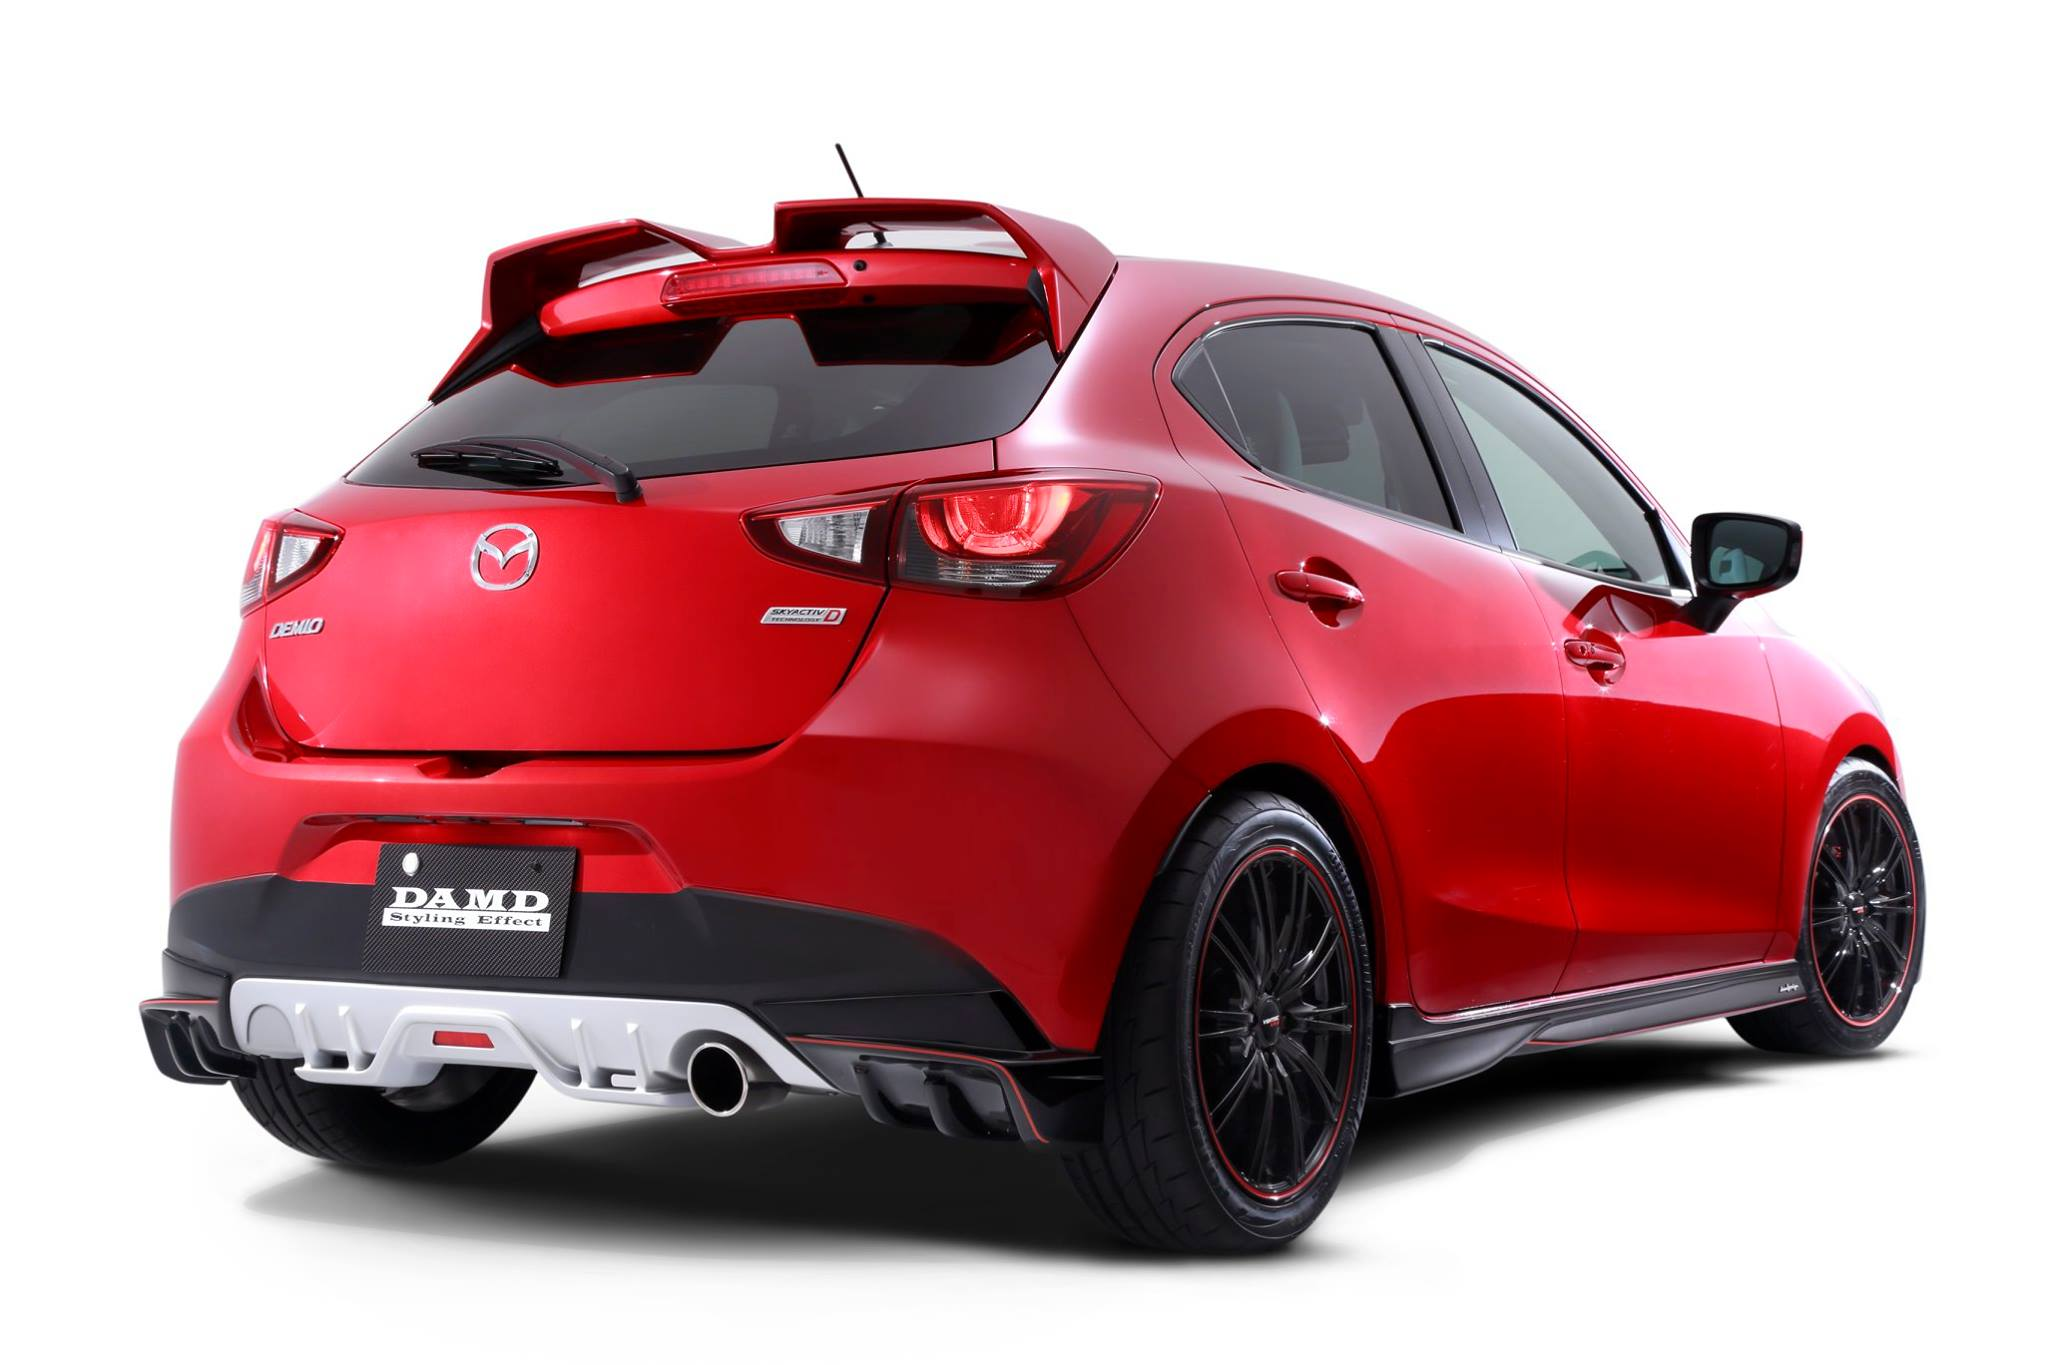 Mazda Cx 3 >> Mazda 2 and CX-3 fitted with DAMD body kits in Japan Paul Tan - Image 468232